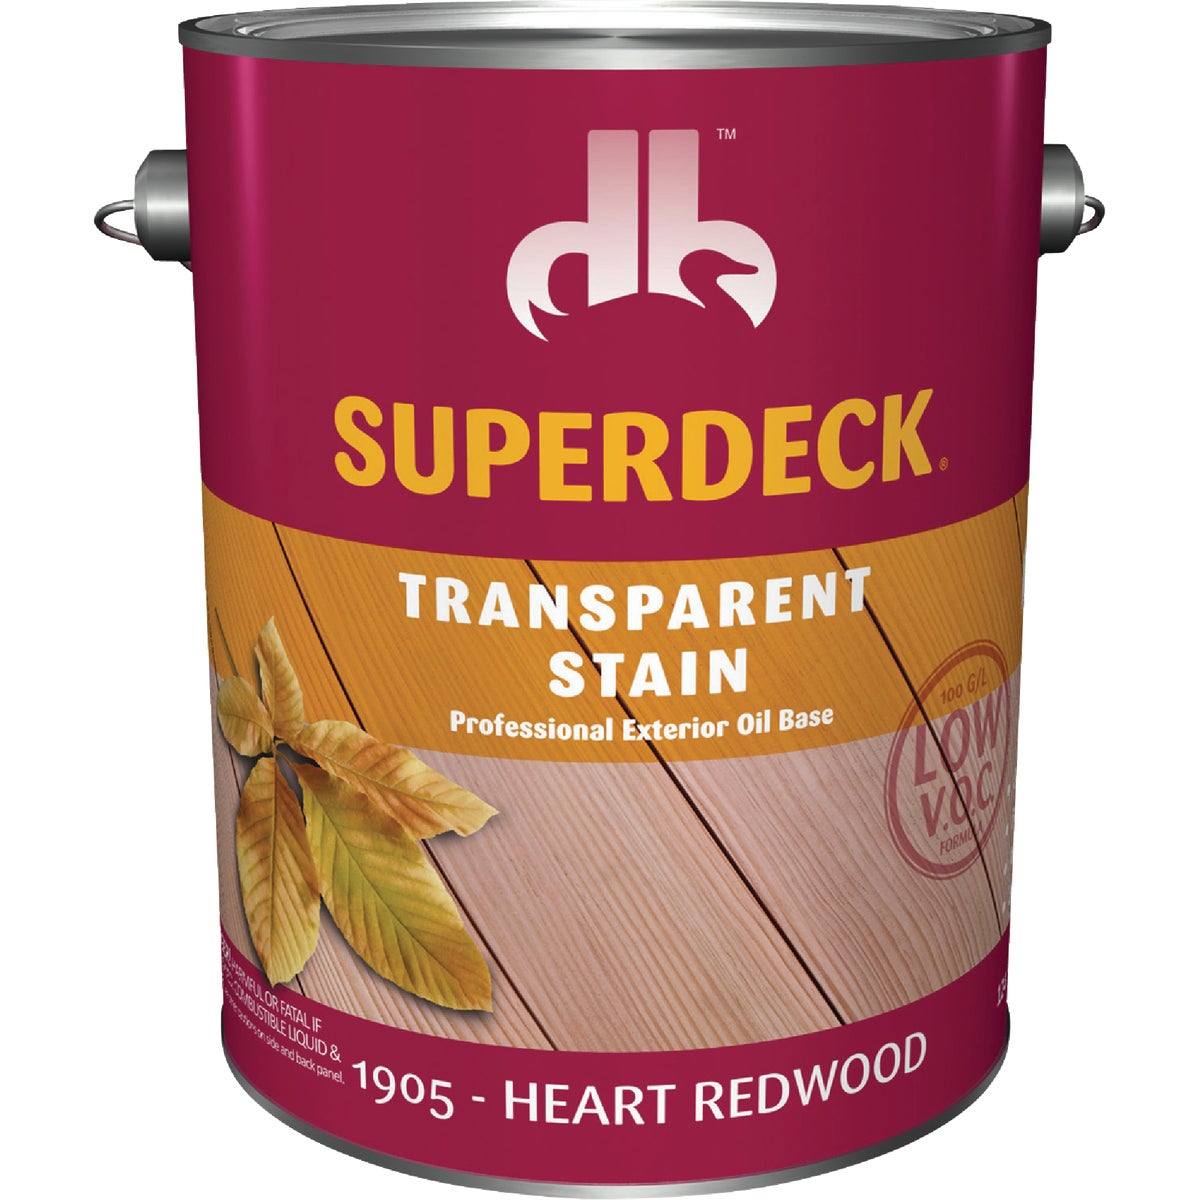 HEART RDWOOD TRANS STAIN